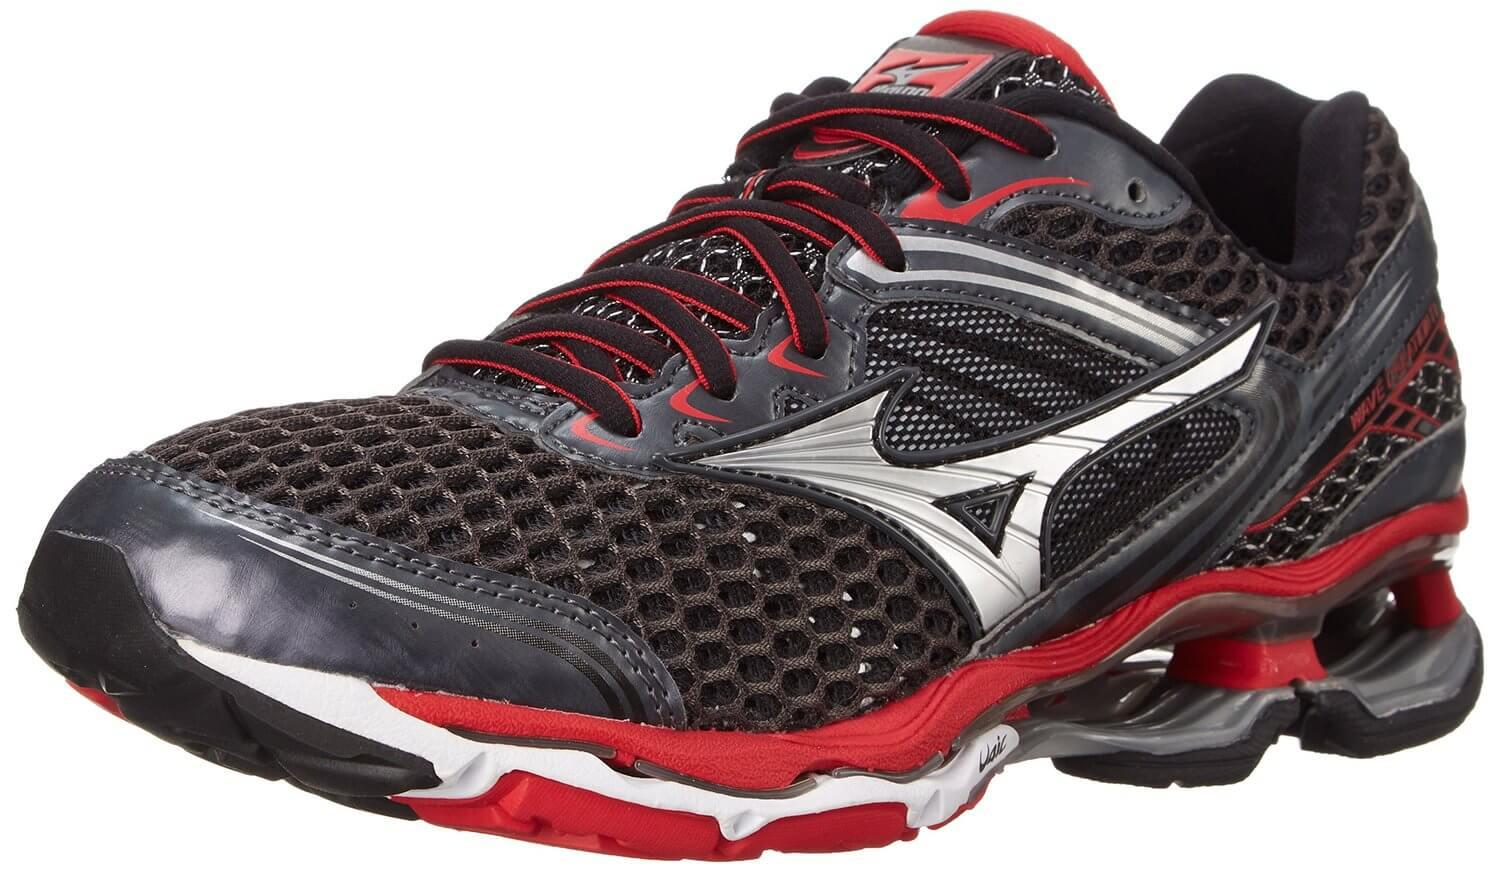 An in depth review of the Mizuno Wave Creation 17